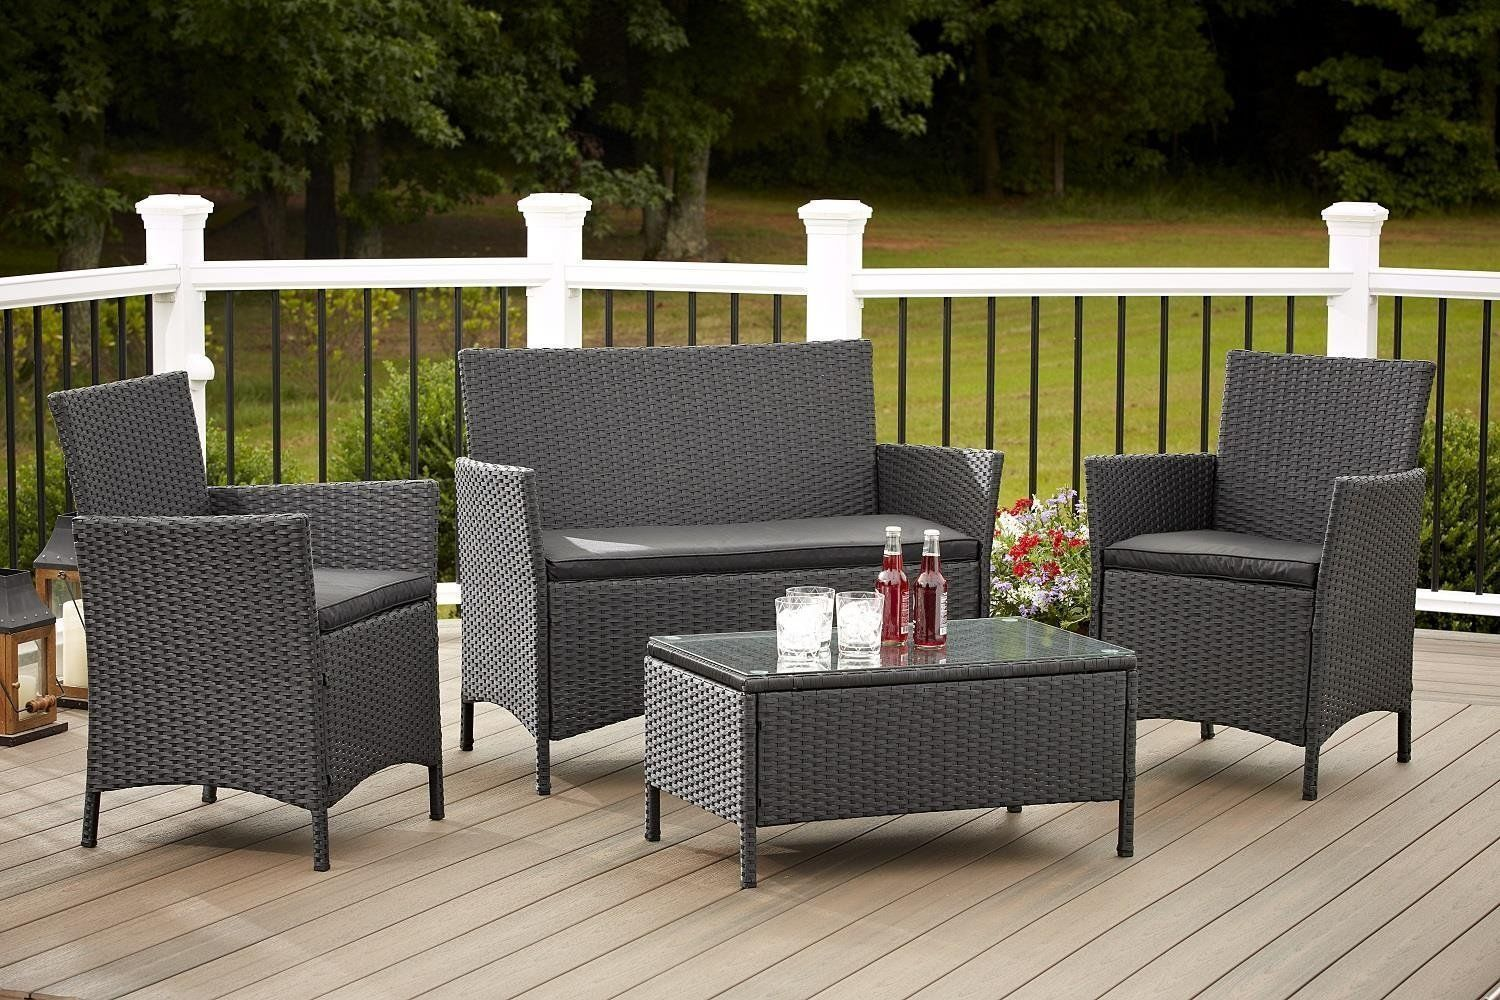 Jamaica 4 Piece Patio Furniture Set In Outdoor Resin Wicker With